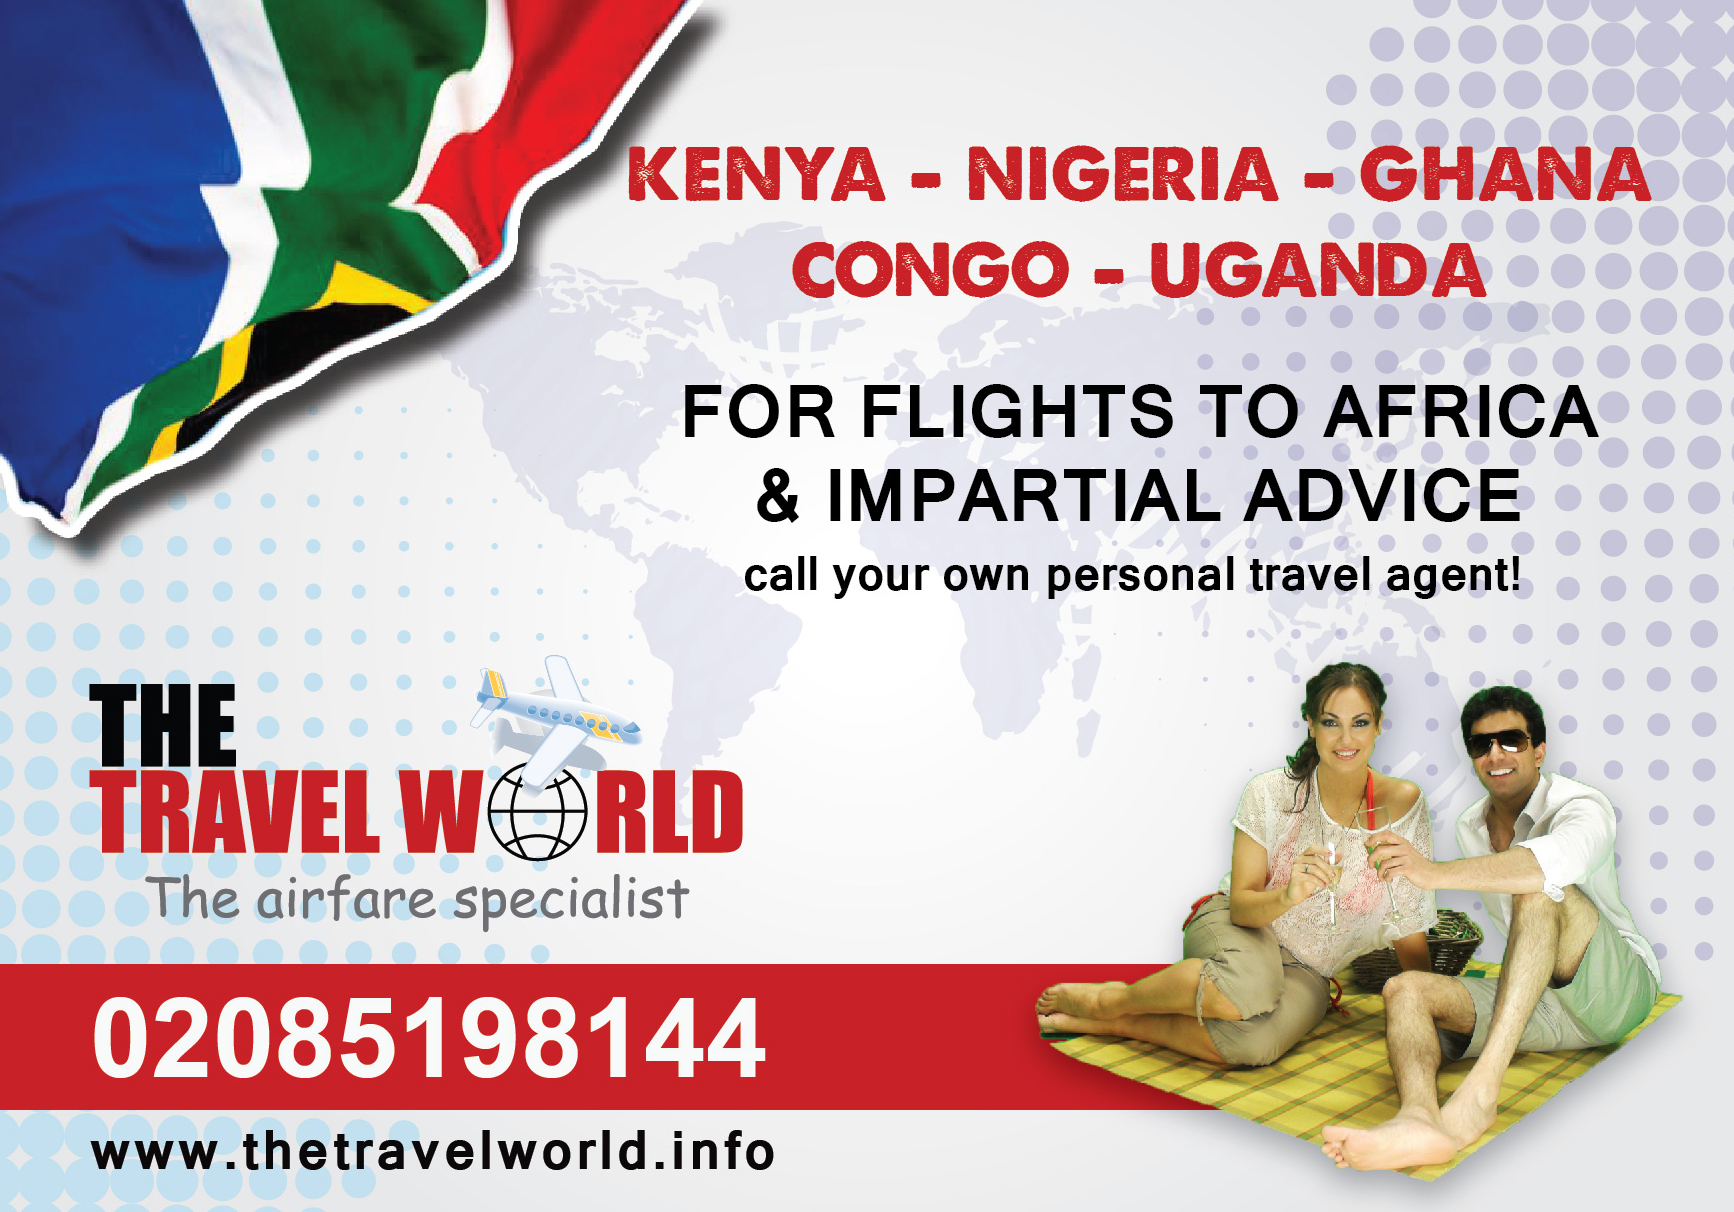 Travel World. Marketing Agency